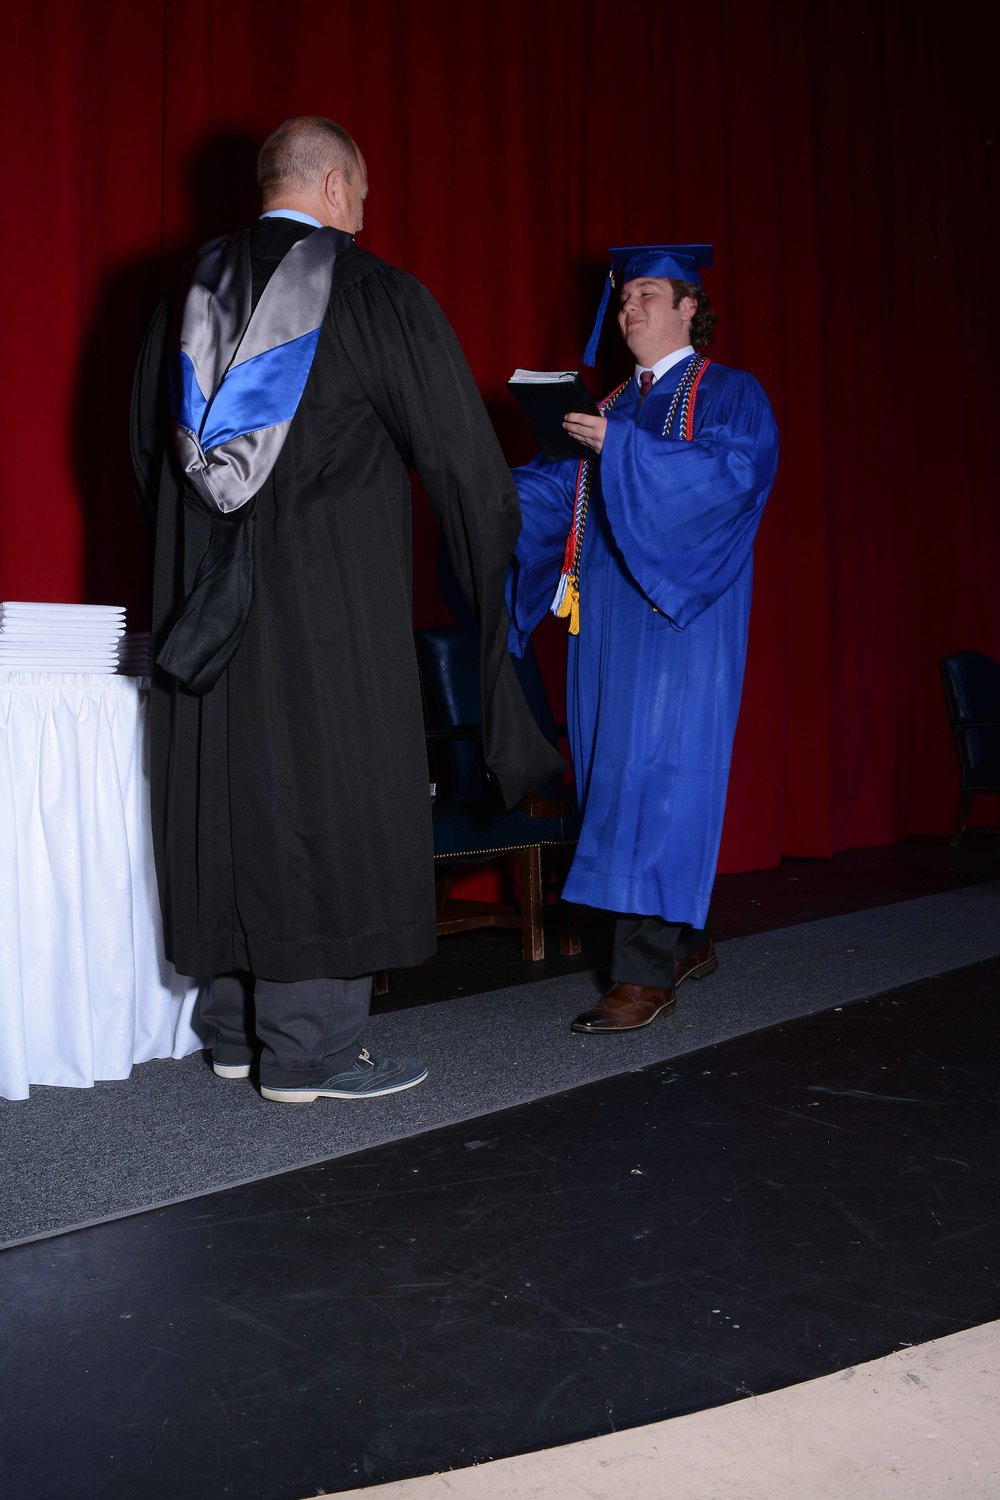 May14 Commencement17.jpg